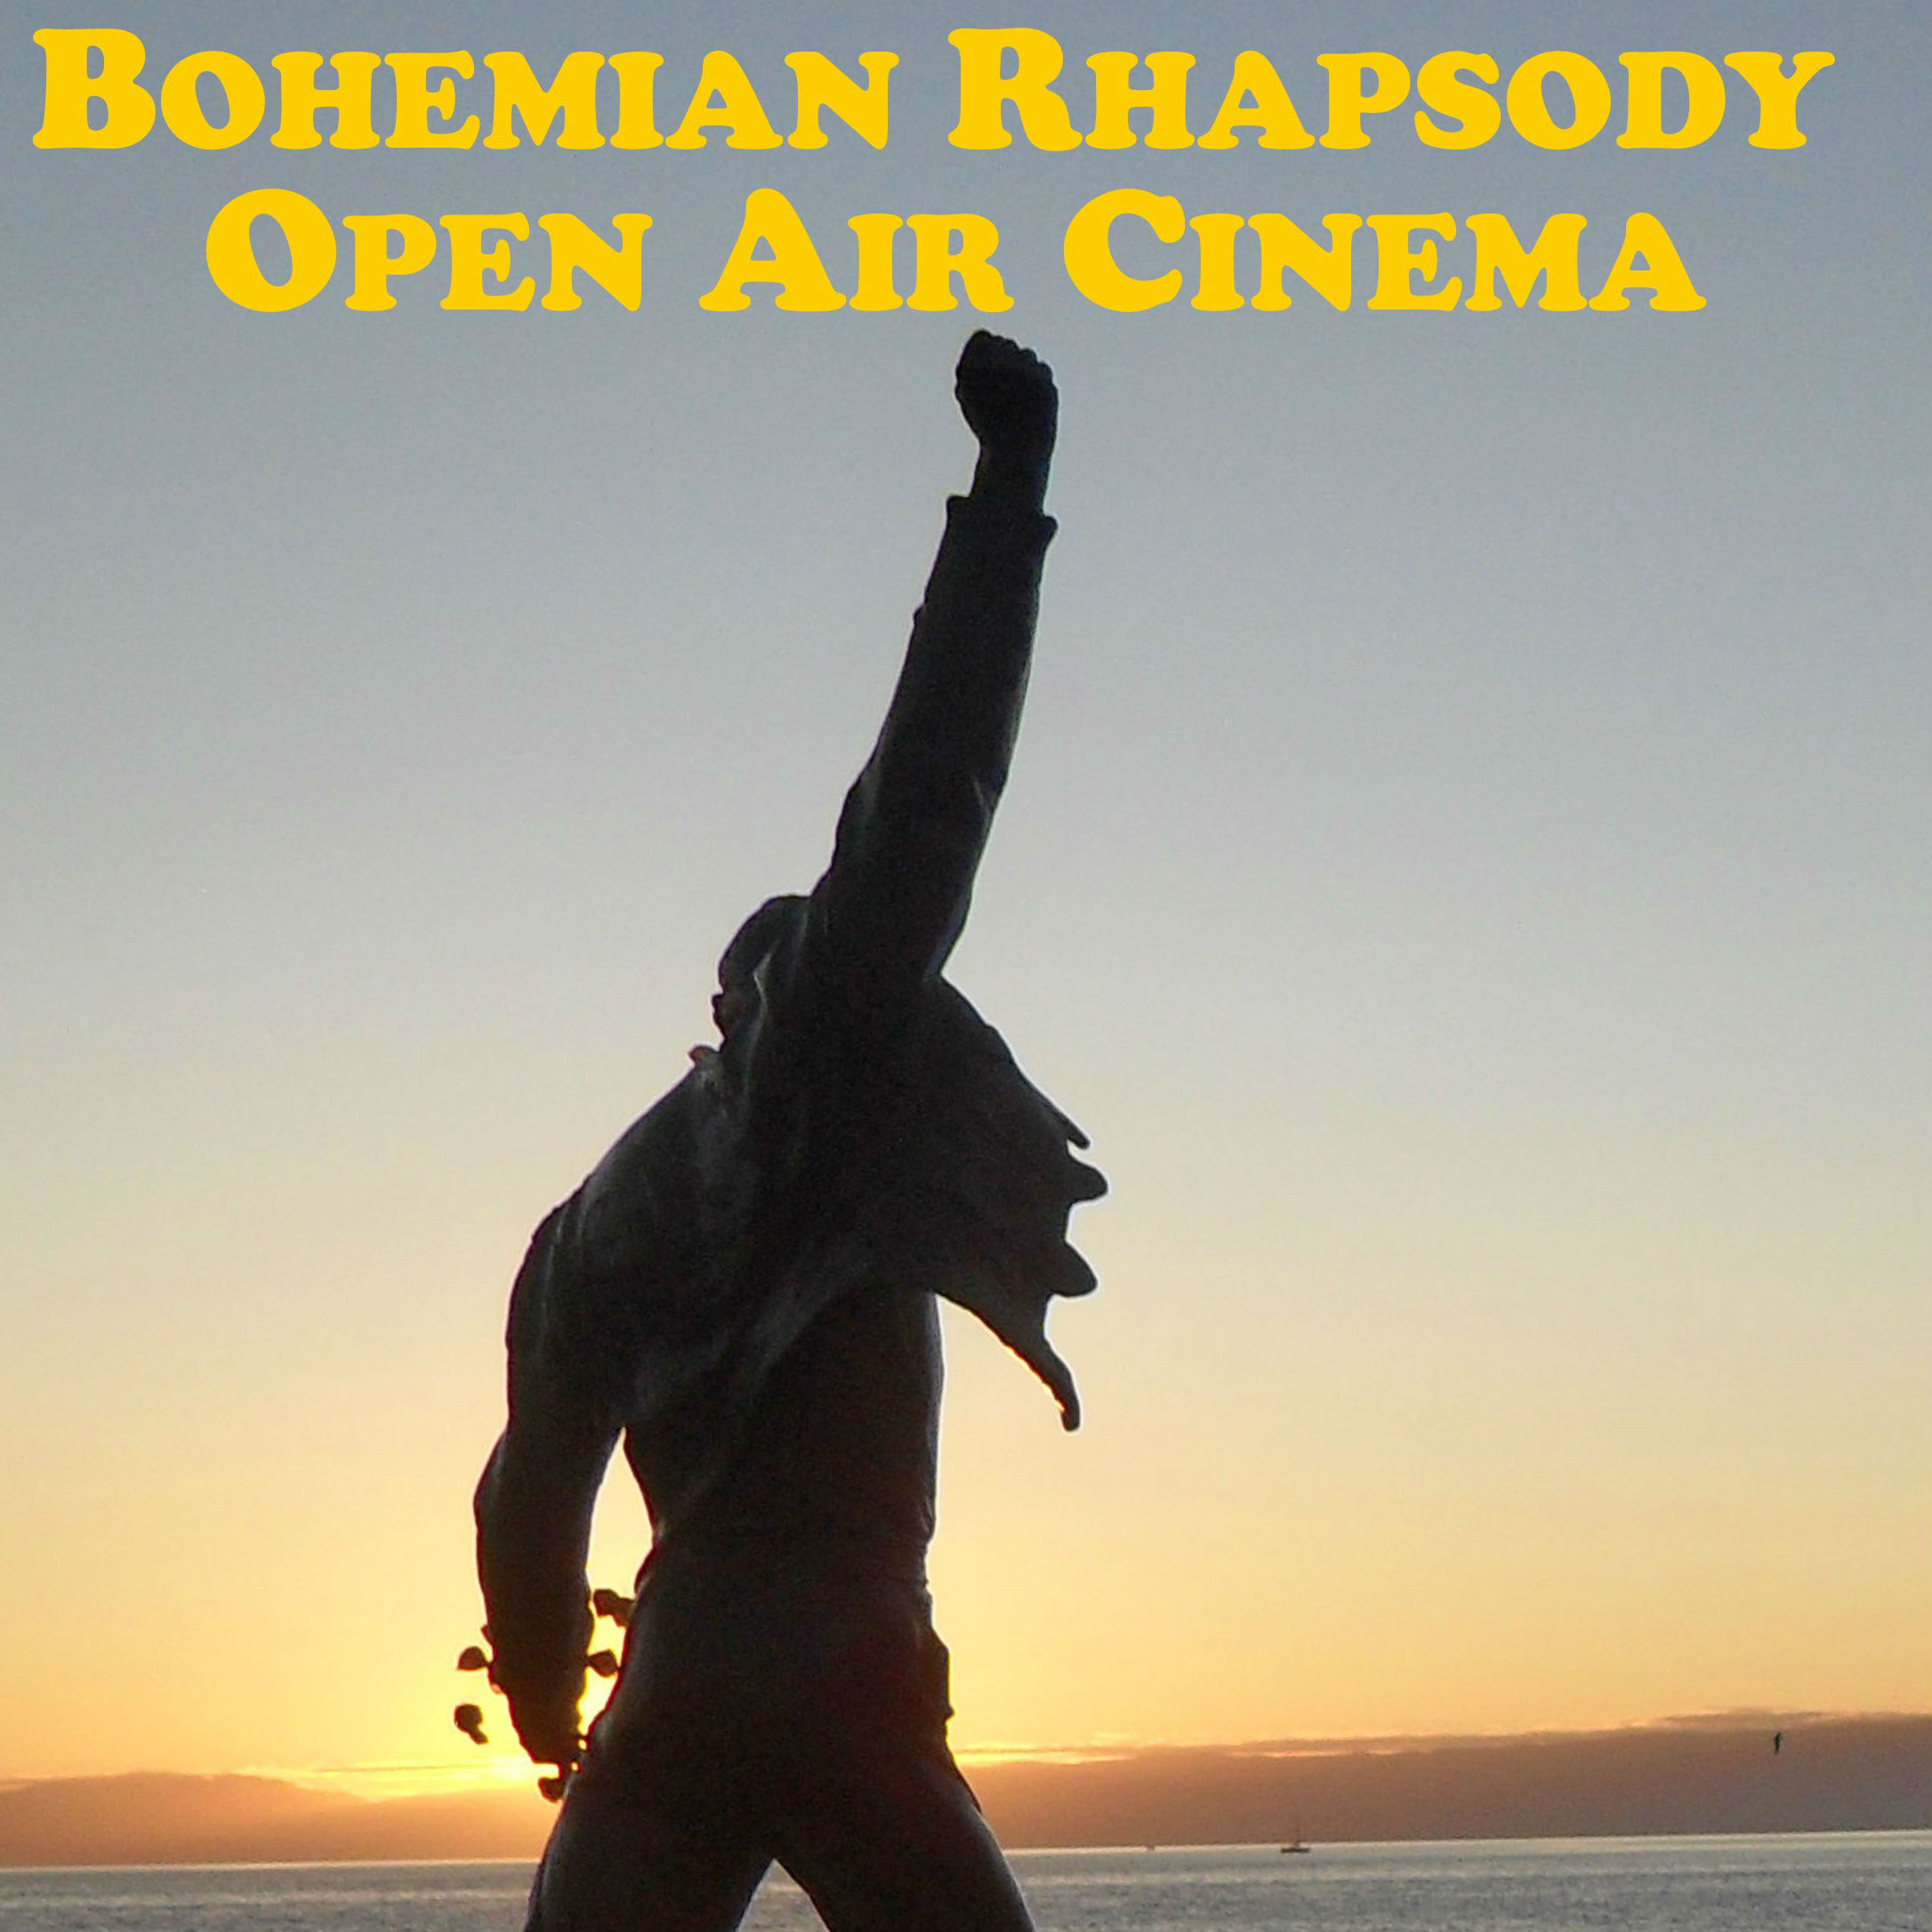 Open Air Cinema - Bohemian Rhapsody (12A)